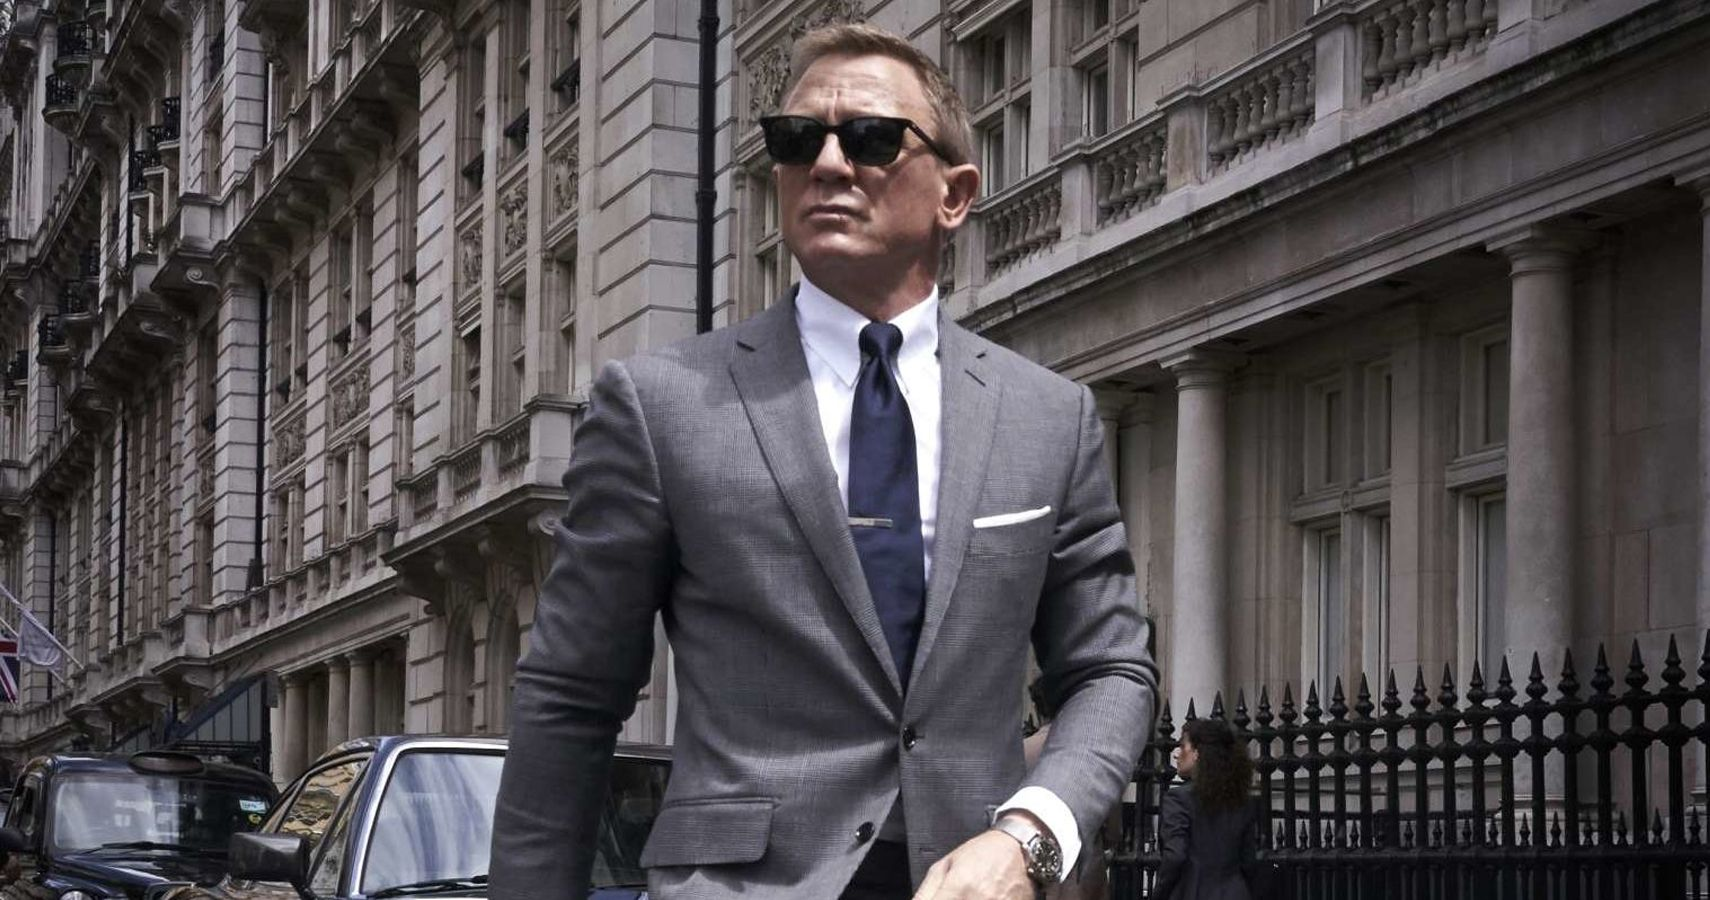 James Bond: 5 Things The Daniel Craig Movies Get Right (& 5 Things They Don't)